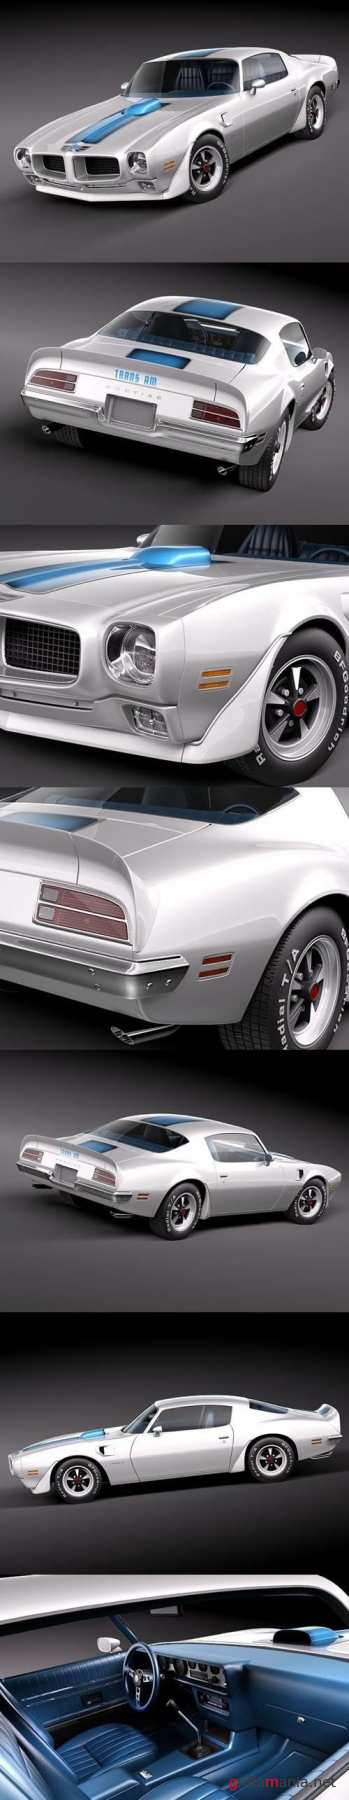 Pontiac Firebird Trans Am 1970 3D Model